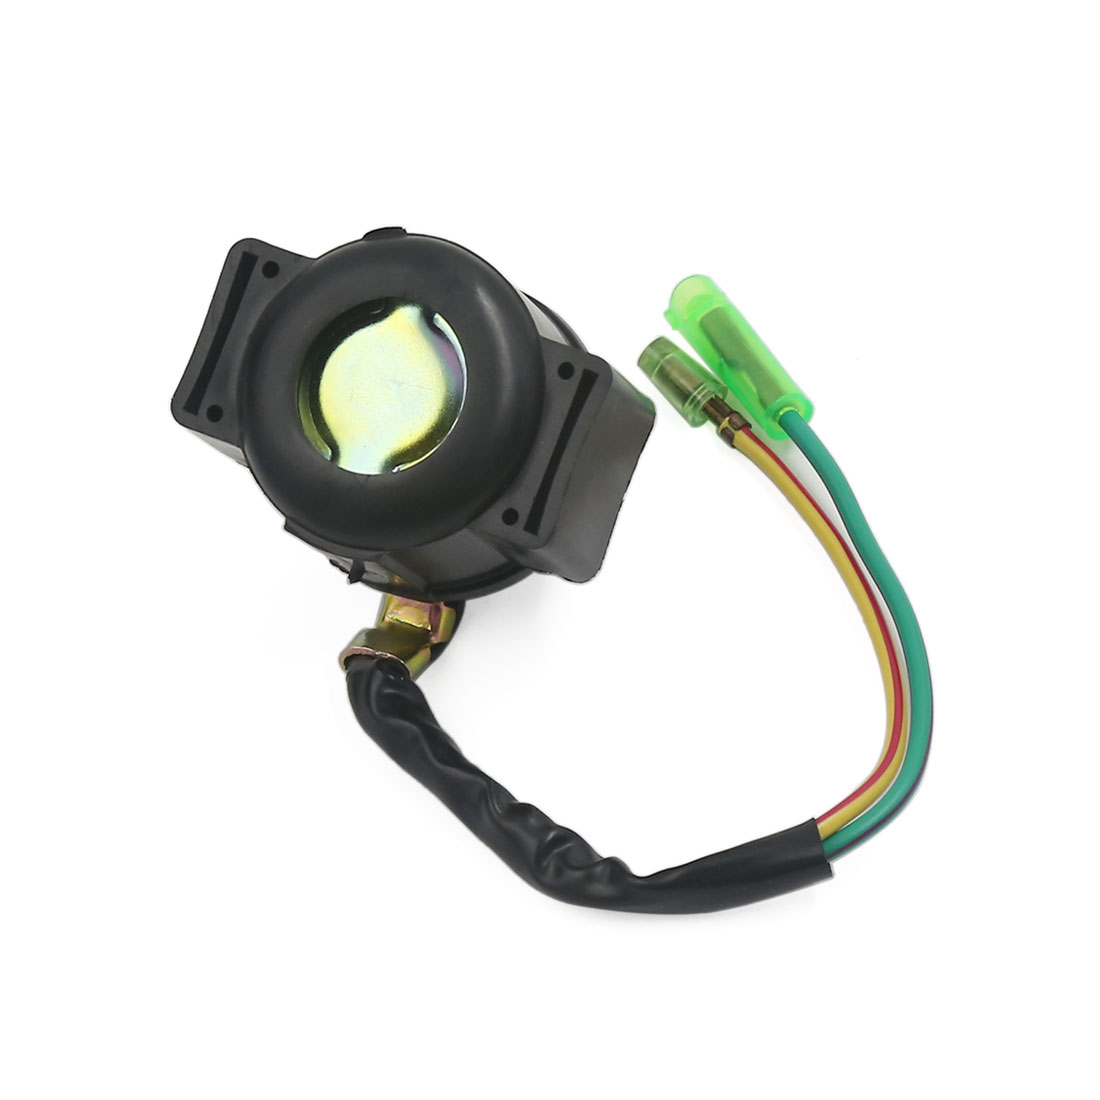 Black Pre-wired Motorcycle Motor Solenoid Starter Relay Fits Honda TRX250